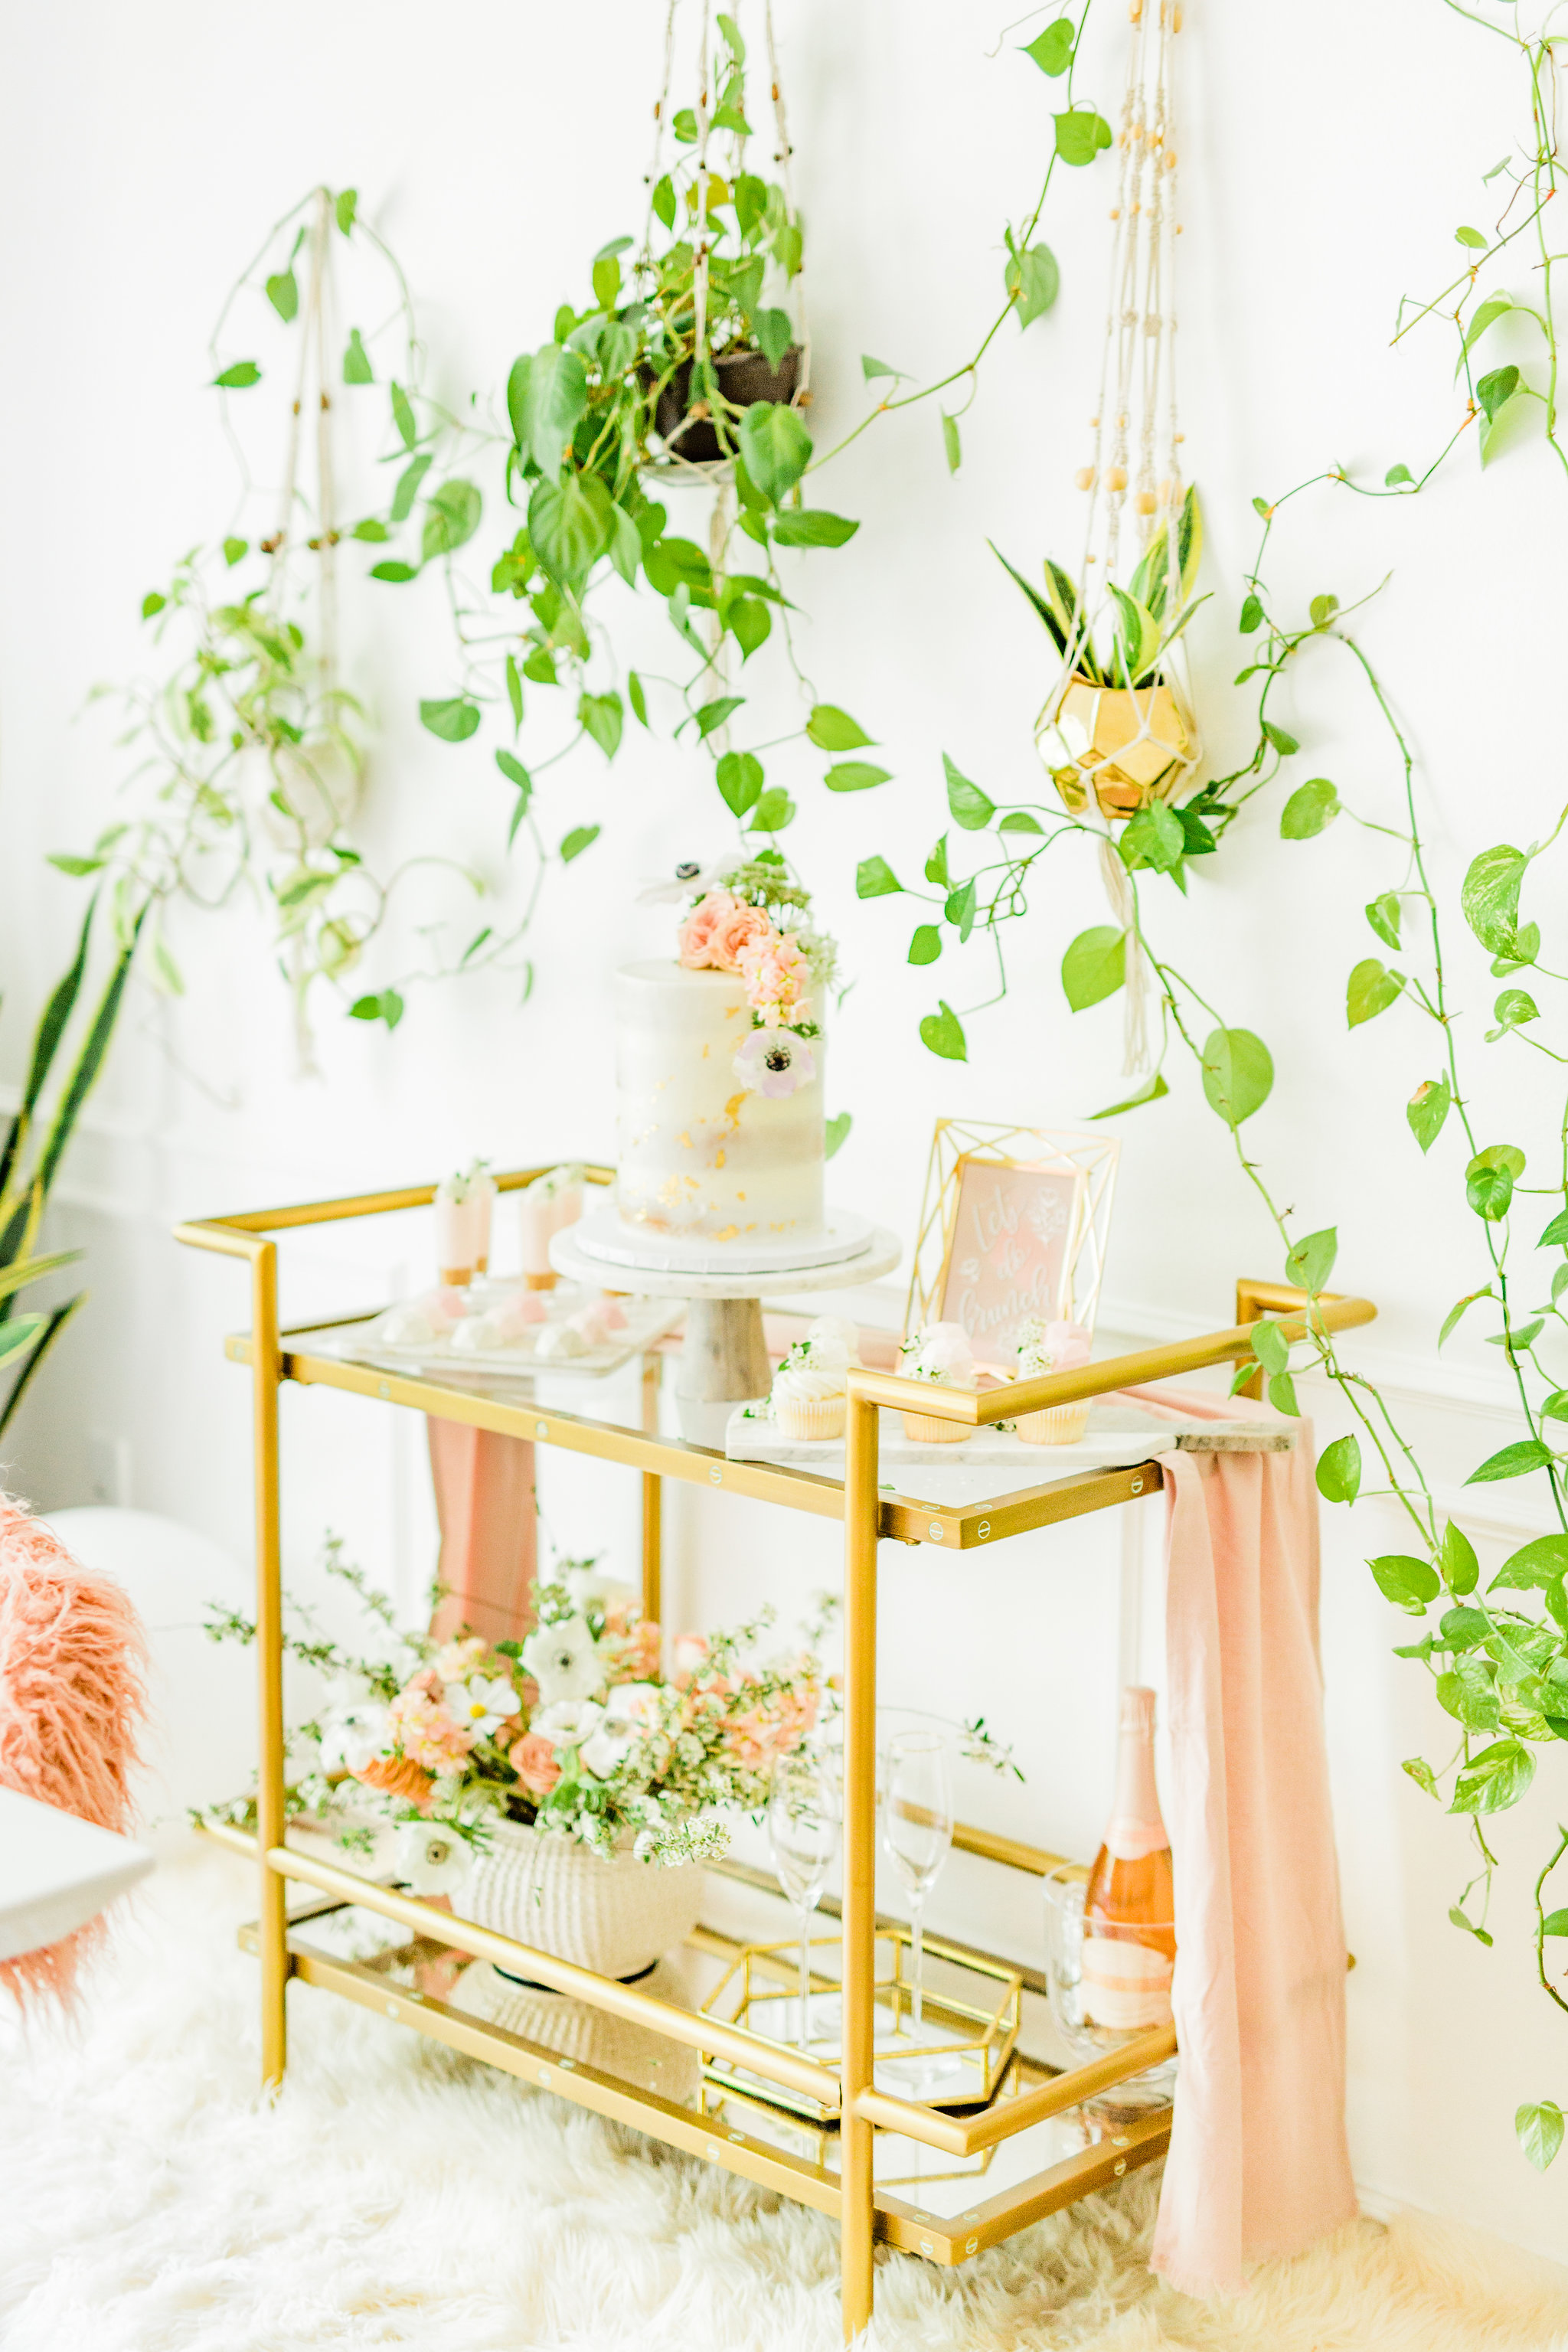 Olivia and Oliver Gold, Blush and Greenry Plants Gilded Garden Styled Bridal Shower Brunch with Bed Bath Beyond Bassett Mirror Company Fouquet Tea Bar Cart Joyfullygreen11.jpg